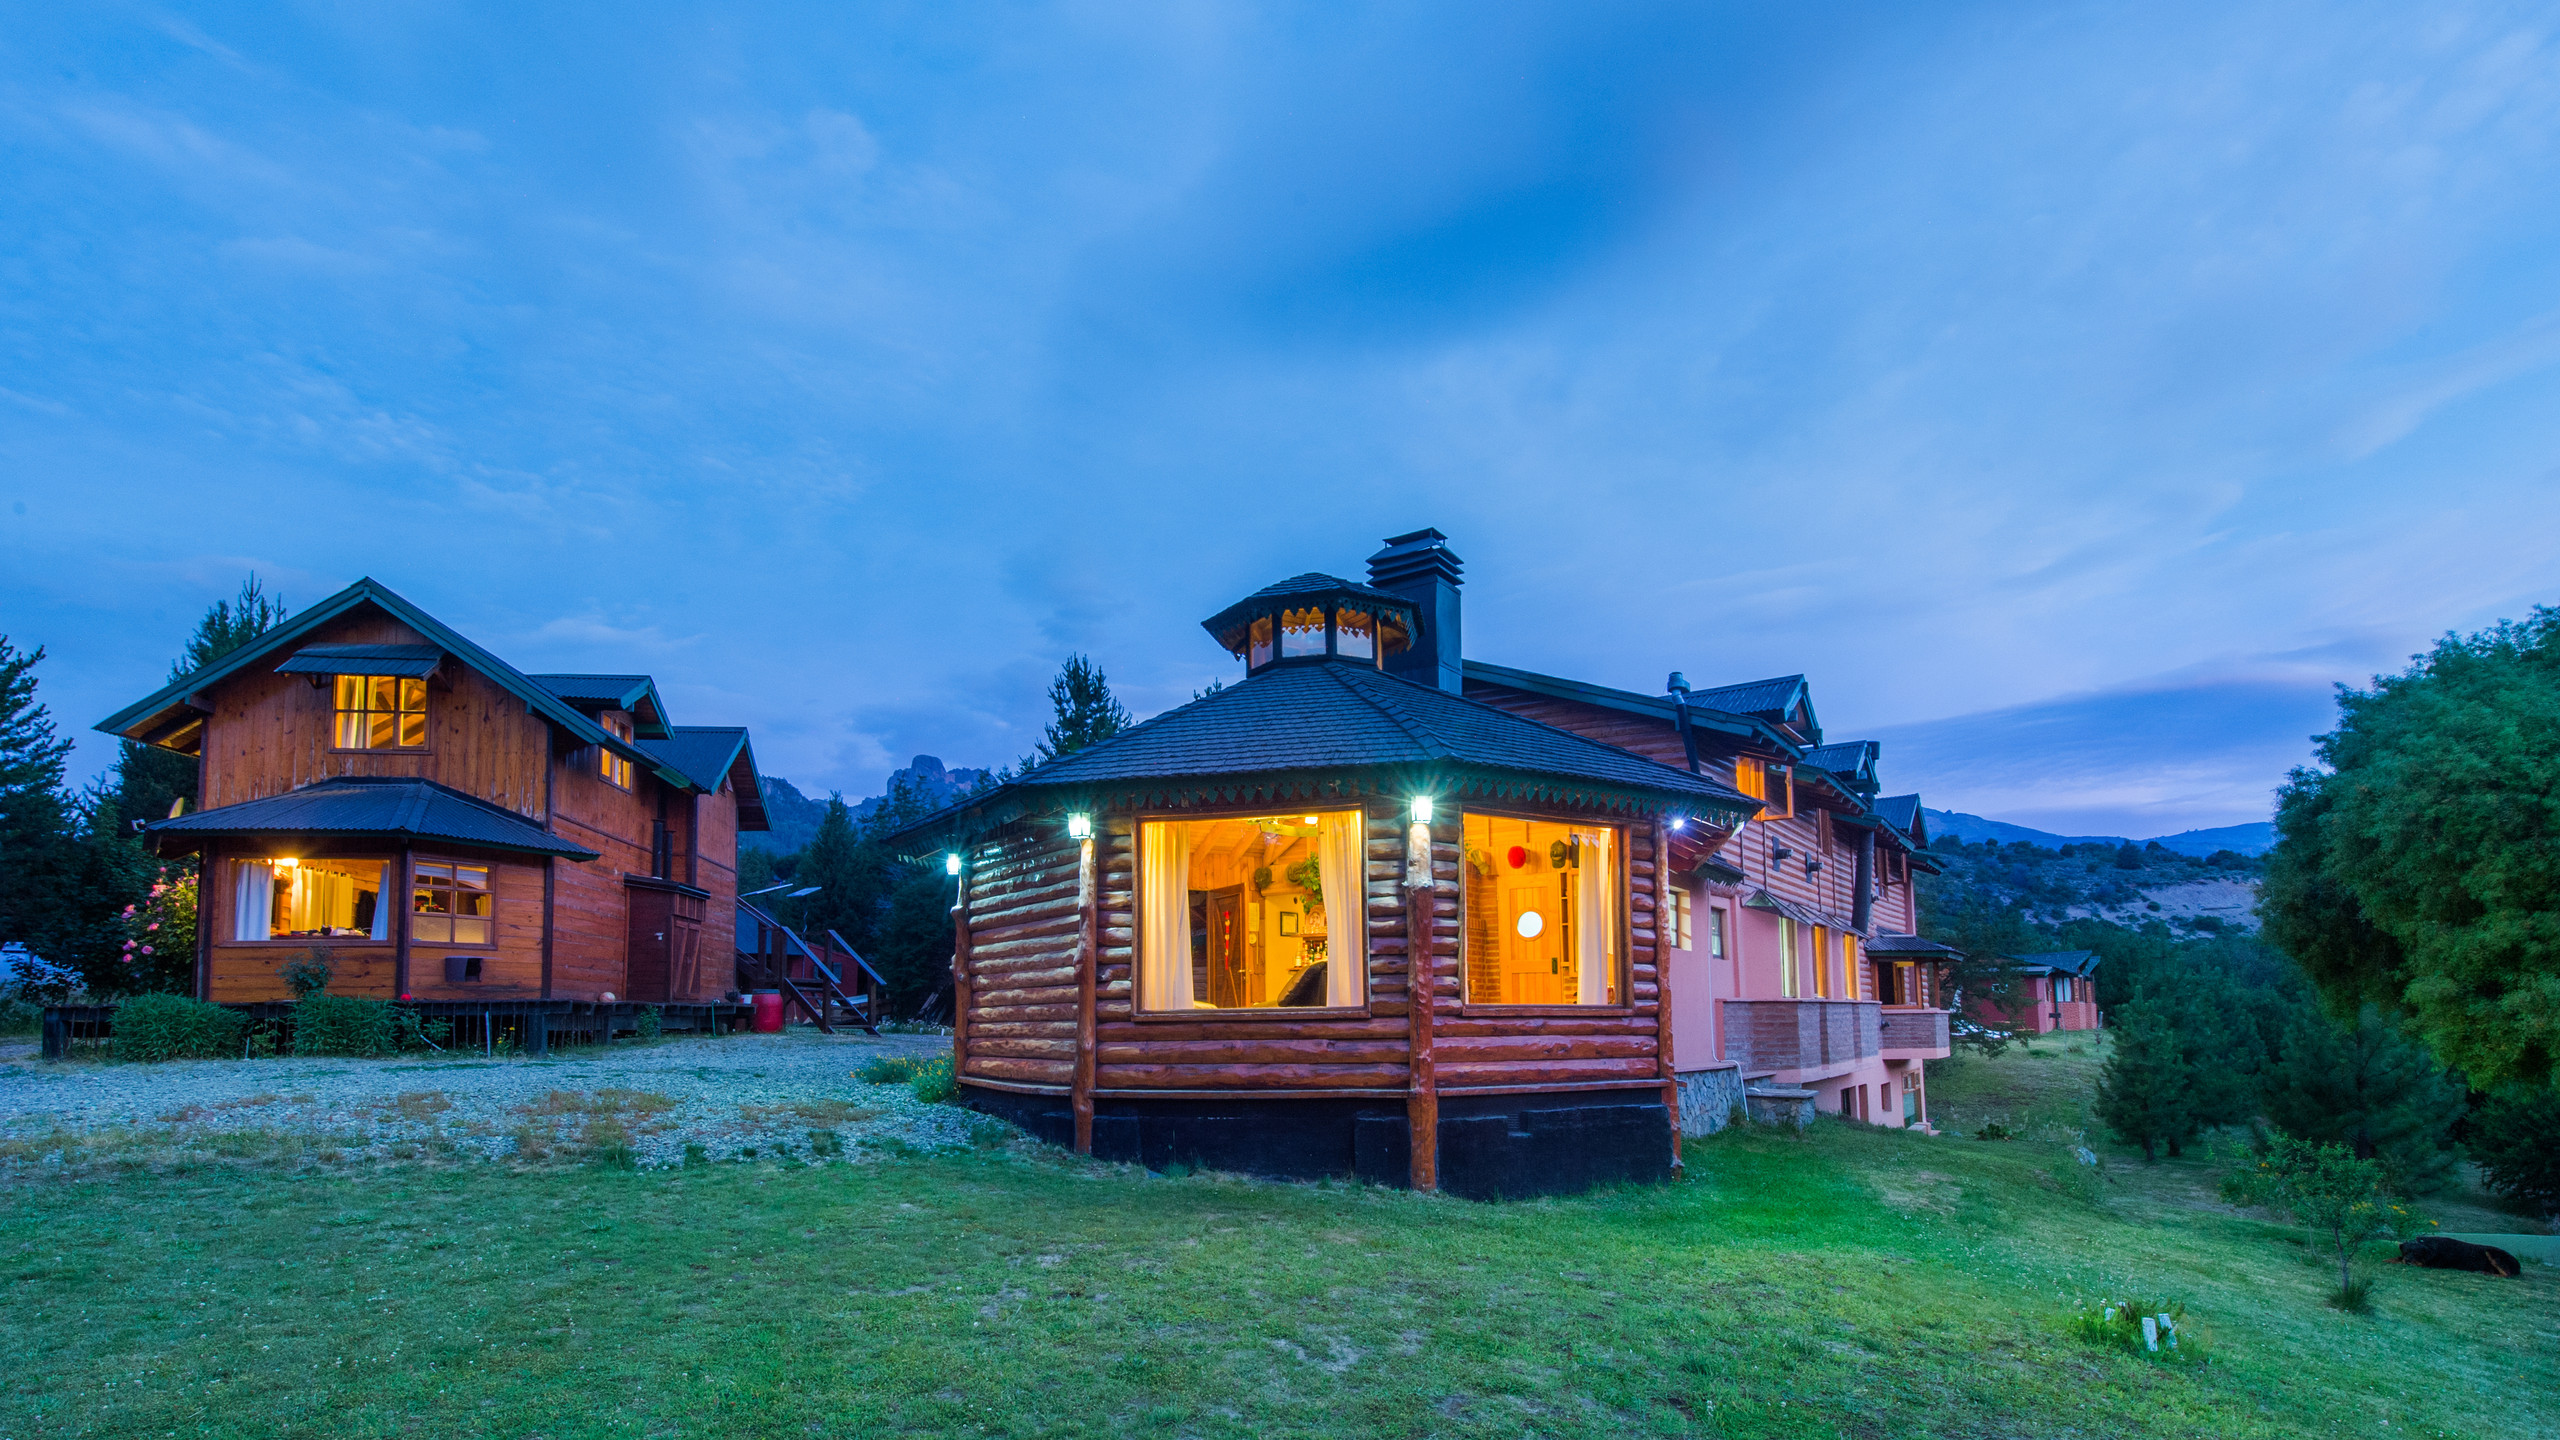 PATAGONIA NORTE LODGE